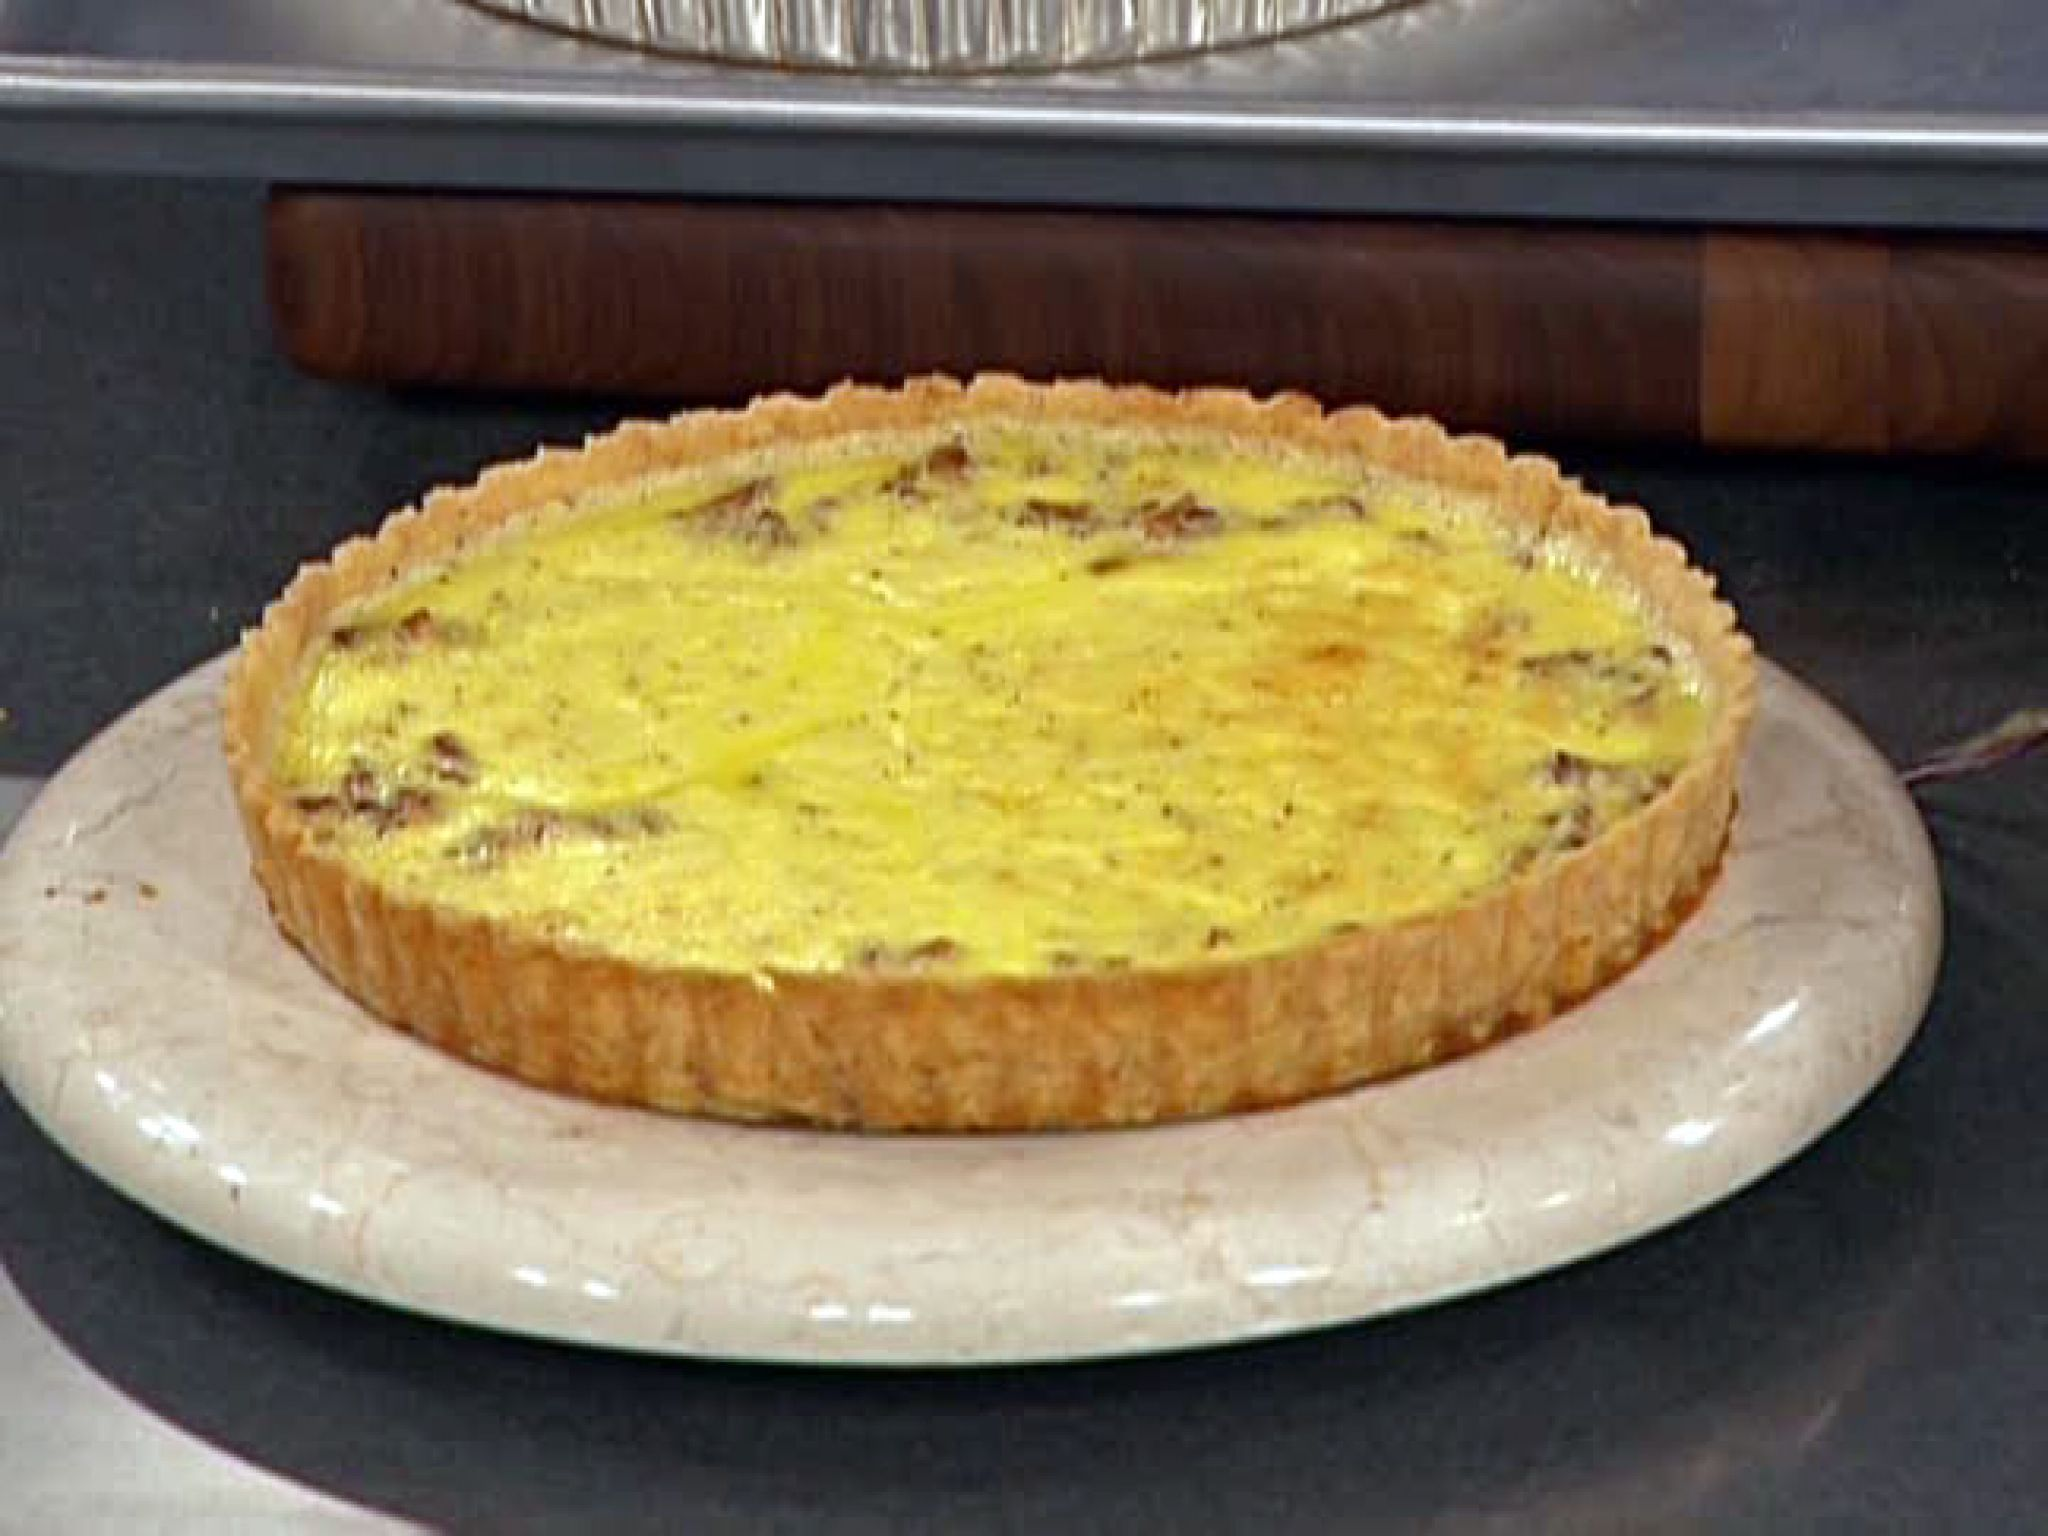 Quiche lorraine recipe from emeril lagasse via food network i quiche lorraine recipe from emeril lagasse via food network i cannot stress enough how flaky forumfinder Image collections